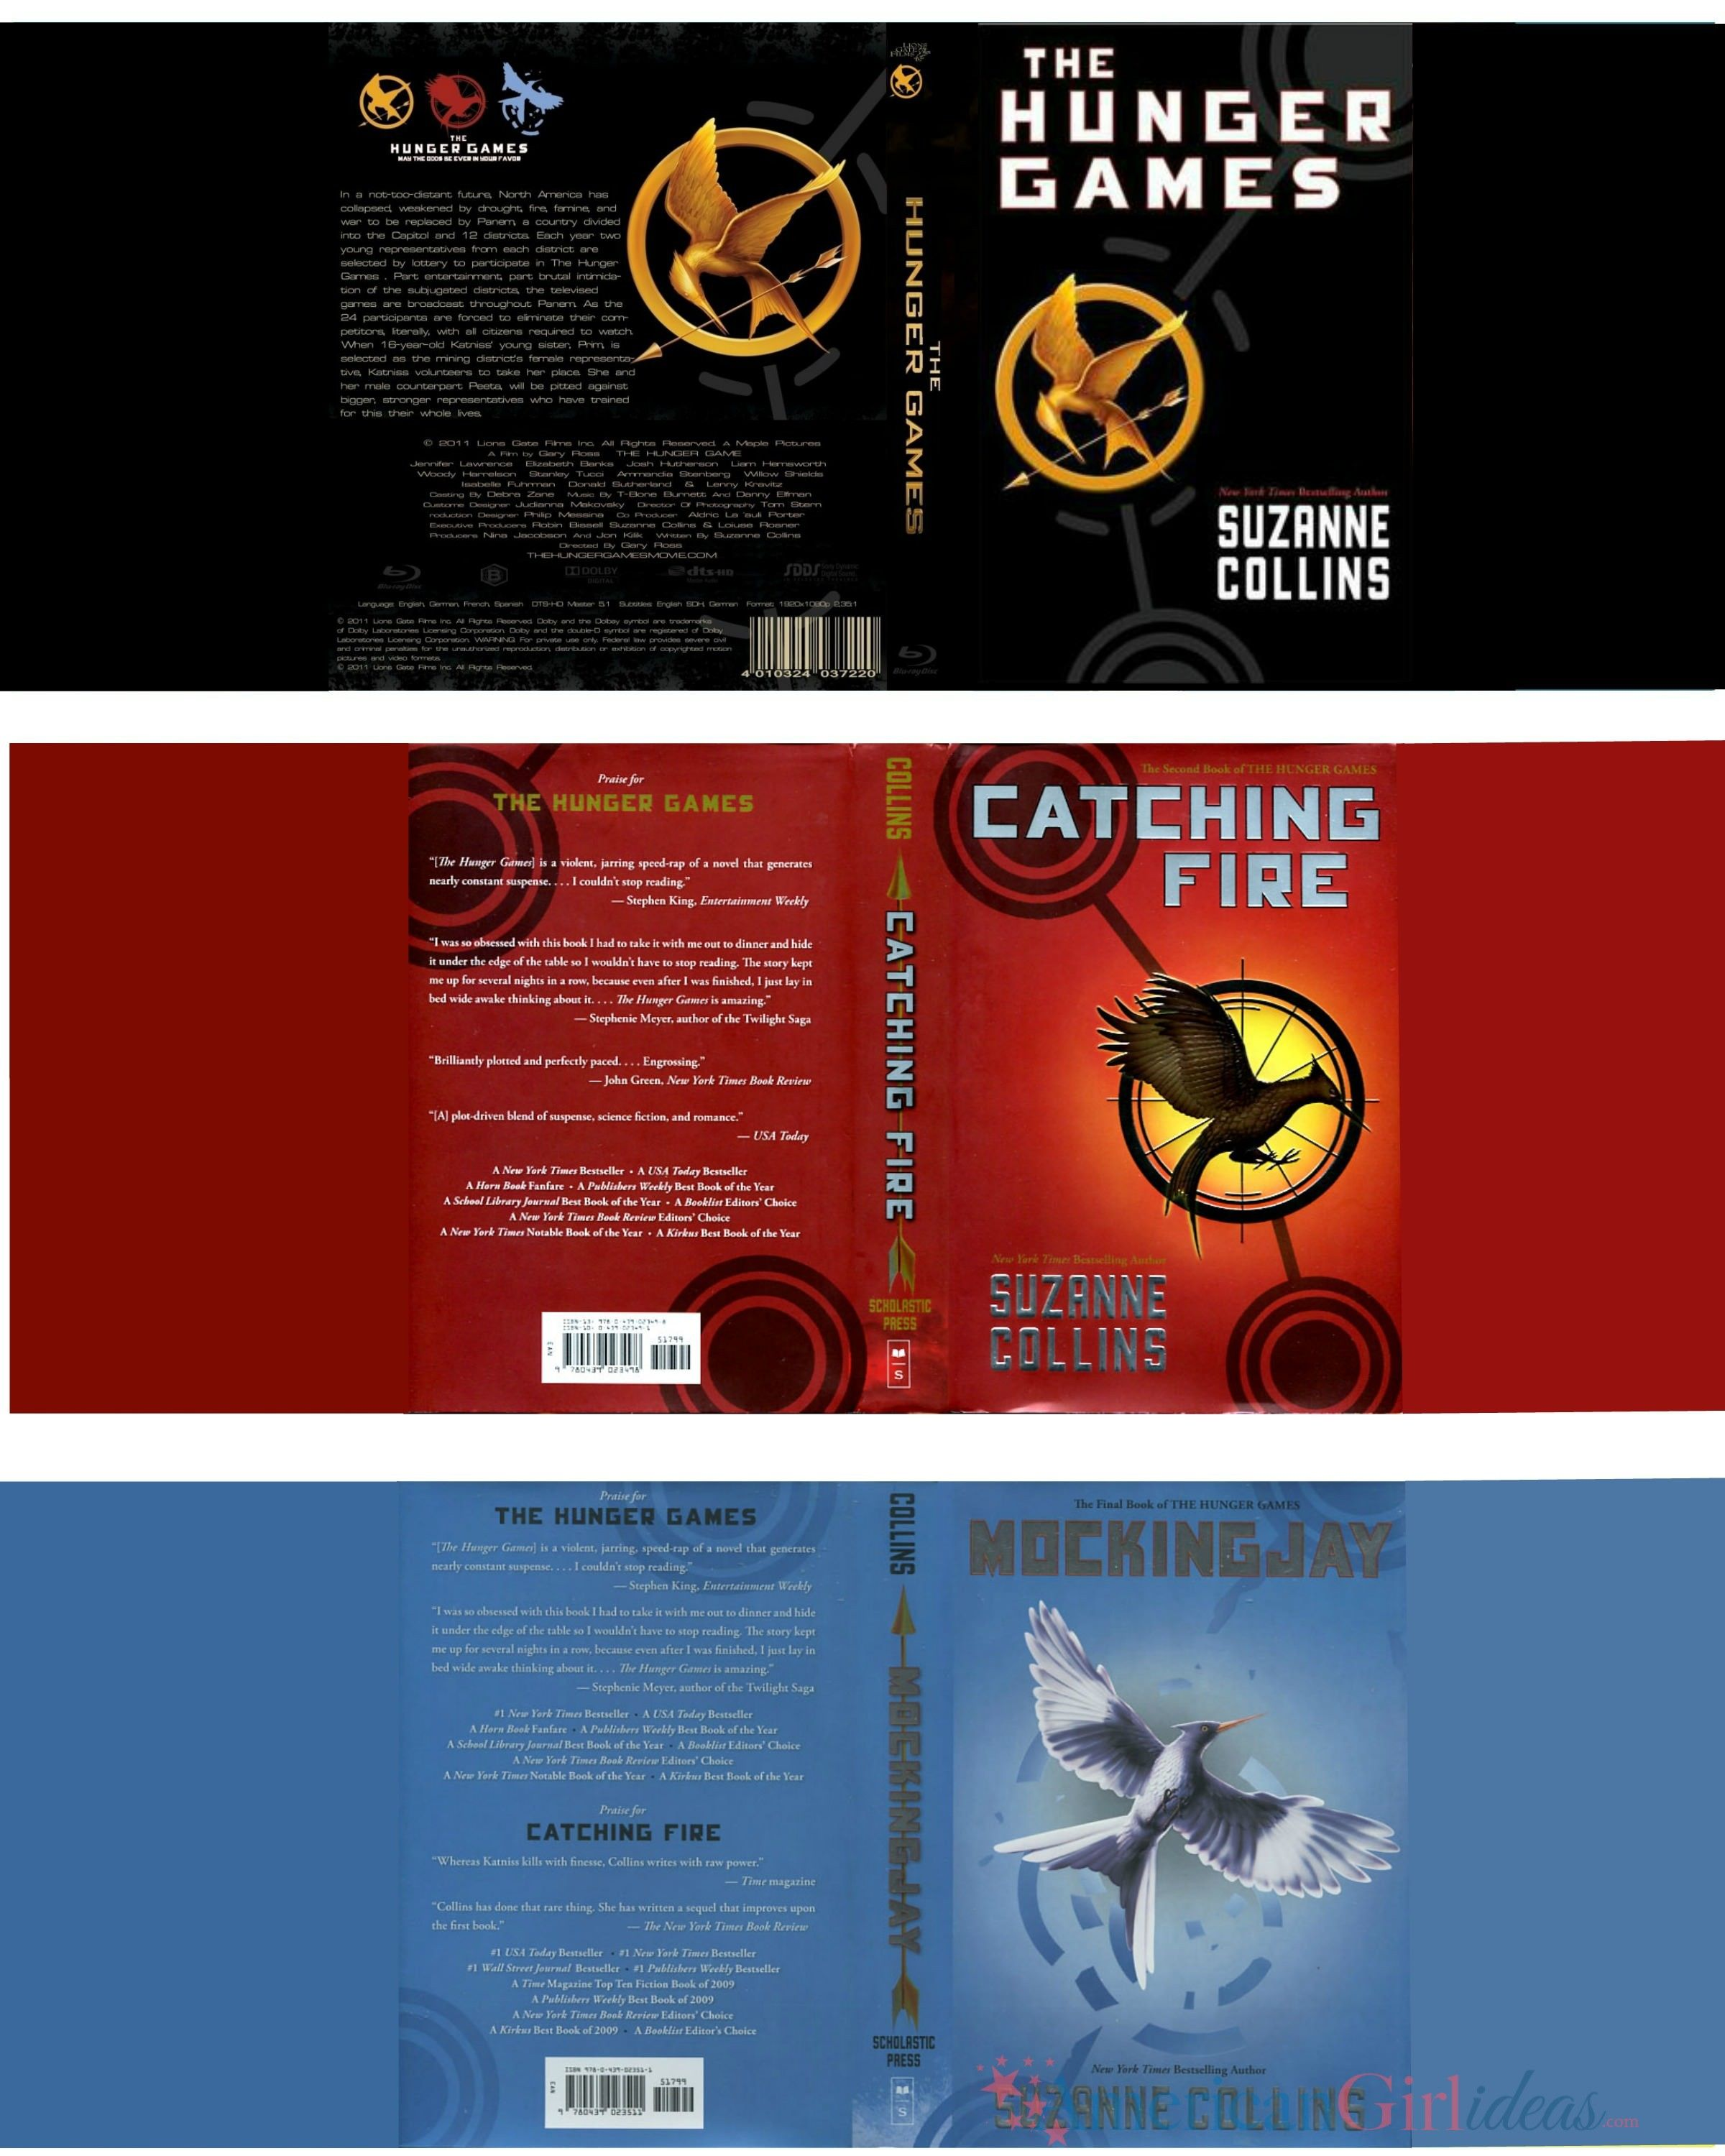 Book Cover Graphism Games ~ Hunger games book cover front and back imgkid